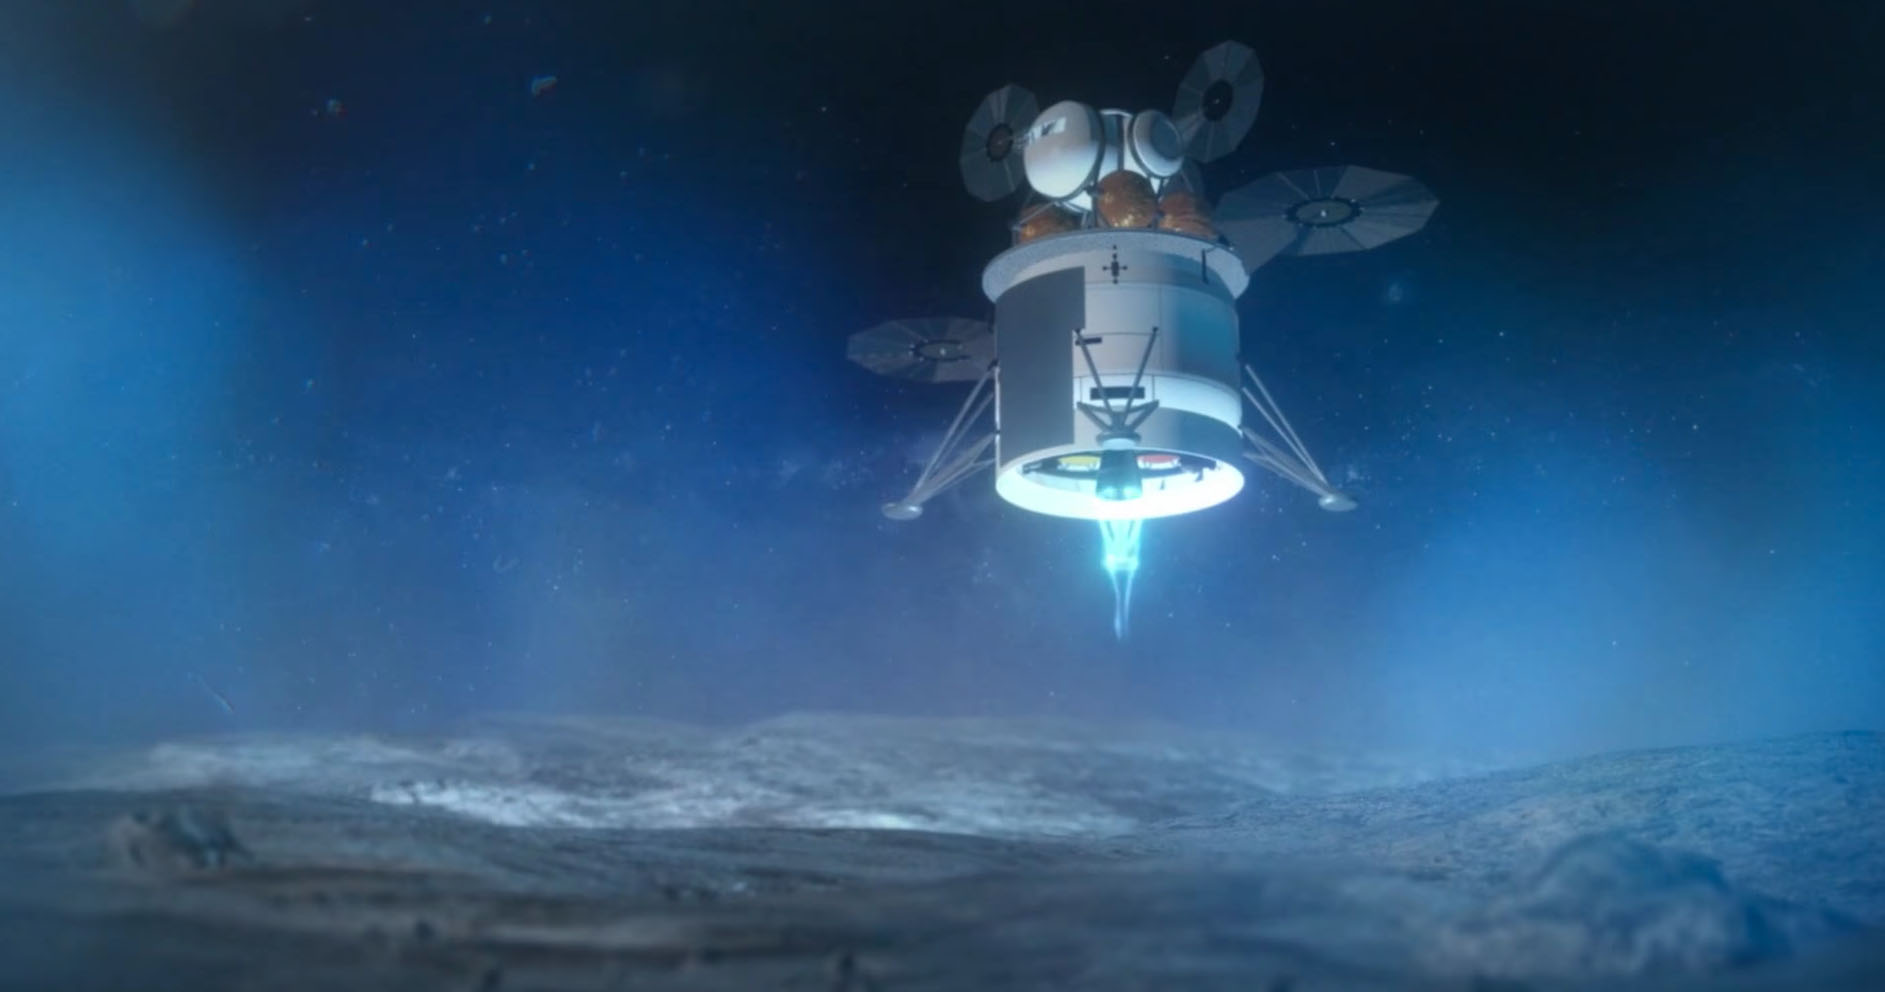 Essay on why nasa needs more funding